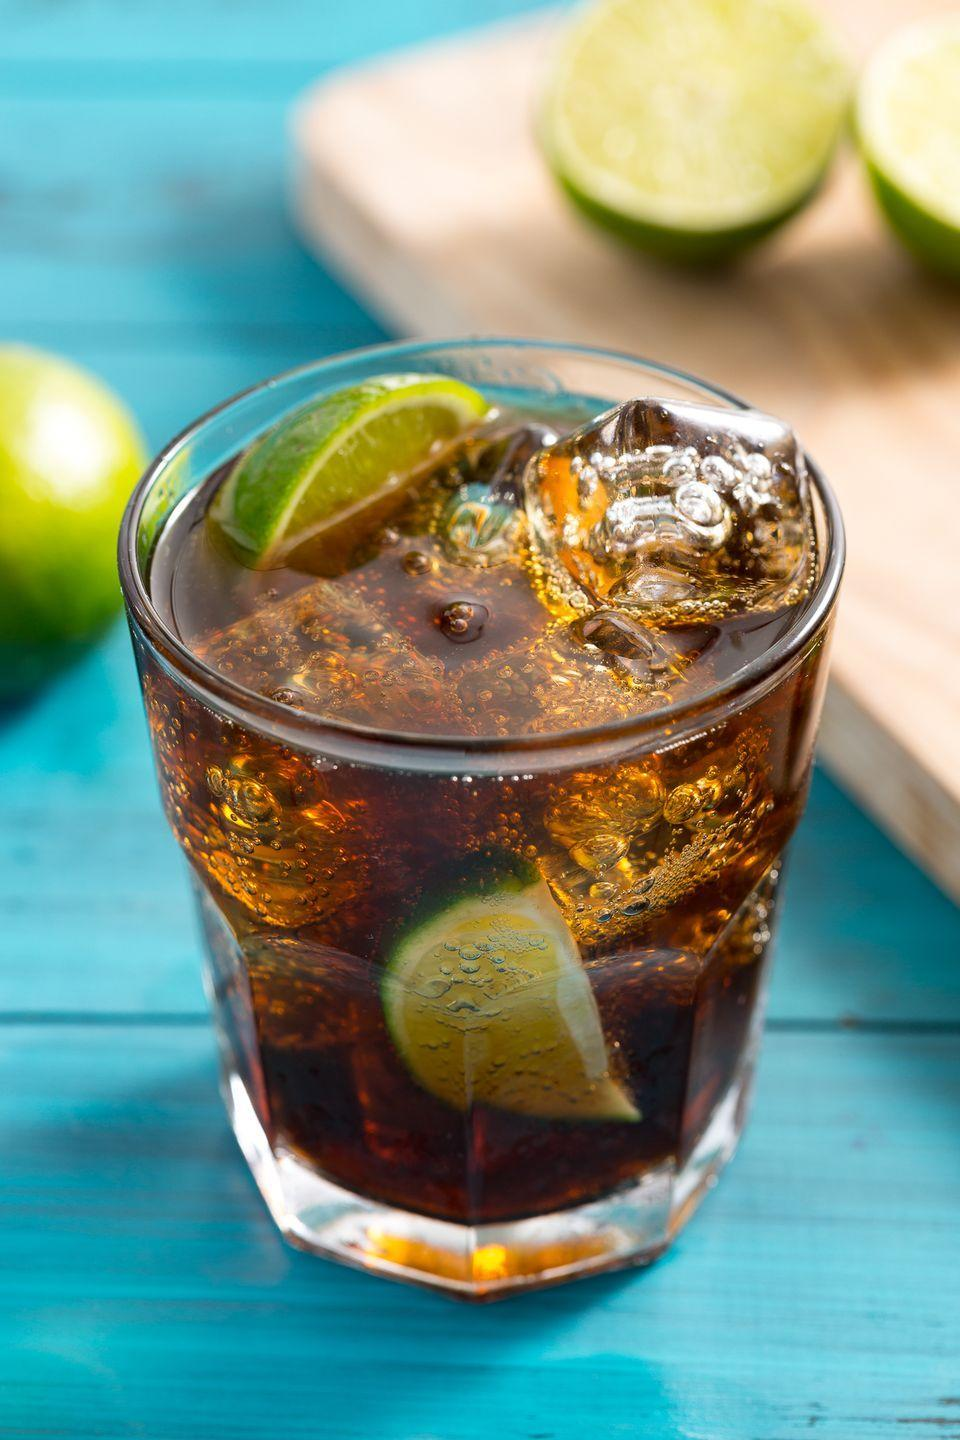 """<p>Add lime juice to a good old fashioned rum and coke, and you've got yourself a Cuba Libre!</p><p>Get the recipe from <a href=""""https://www.delish.com/cooking/recipe-ideas/recipes/a4280/cuba-libre-cocktails-drinks/"""" rel=""""nofollow noopener"""" target=""""_blank"""" data-ylk=""""slk:Delish"""" class=""""link rapid-noclick-resp"""">Delish</a>.</p>"""